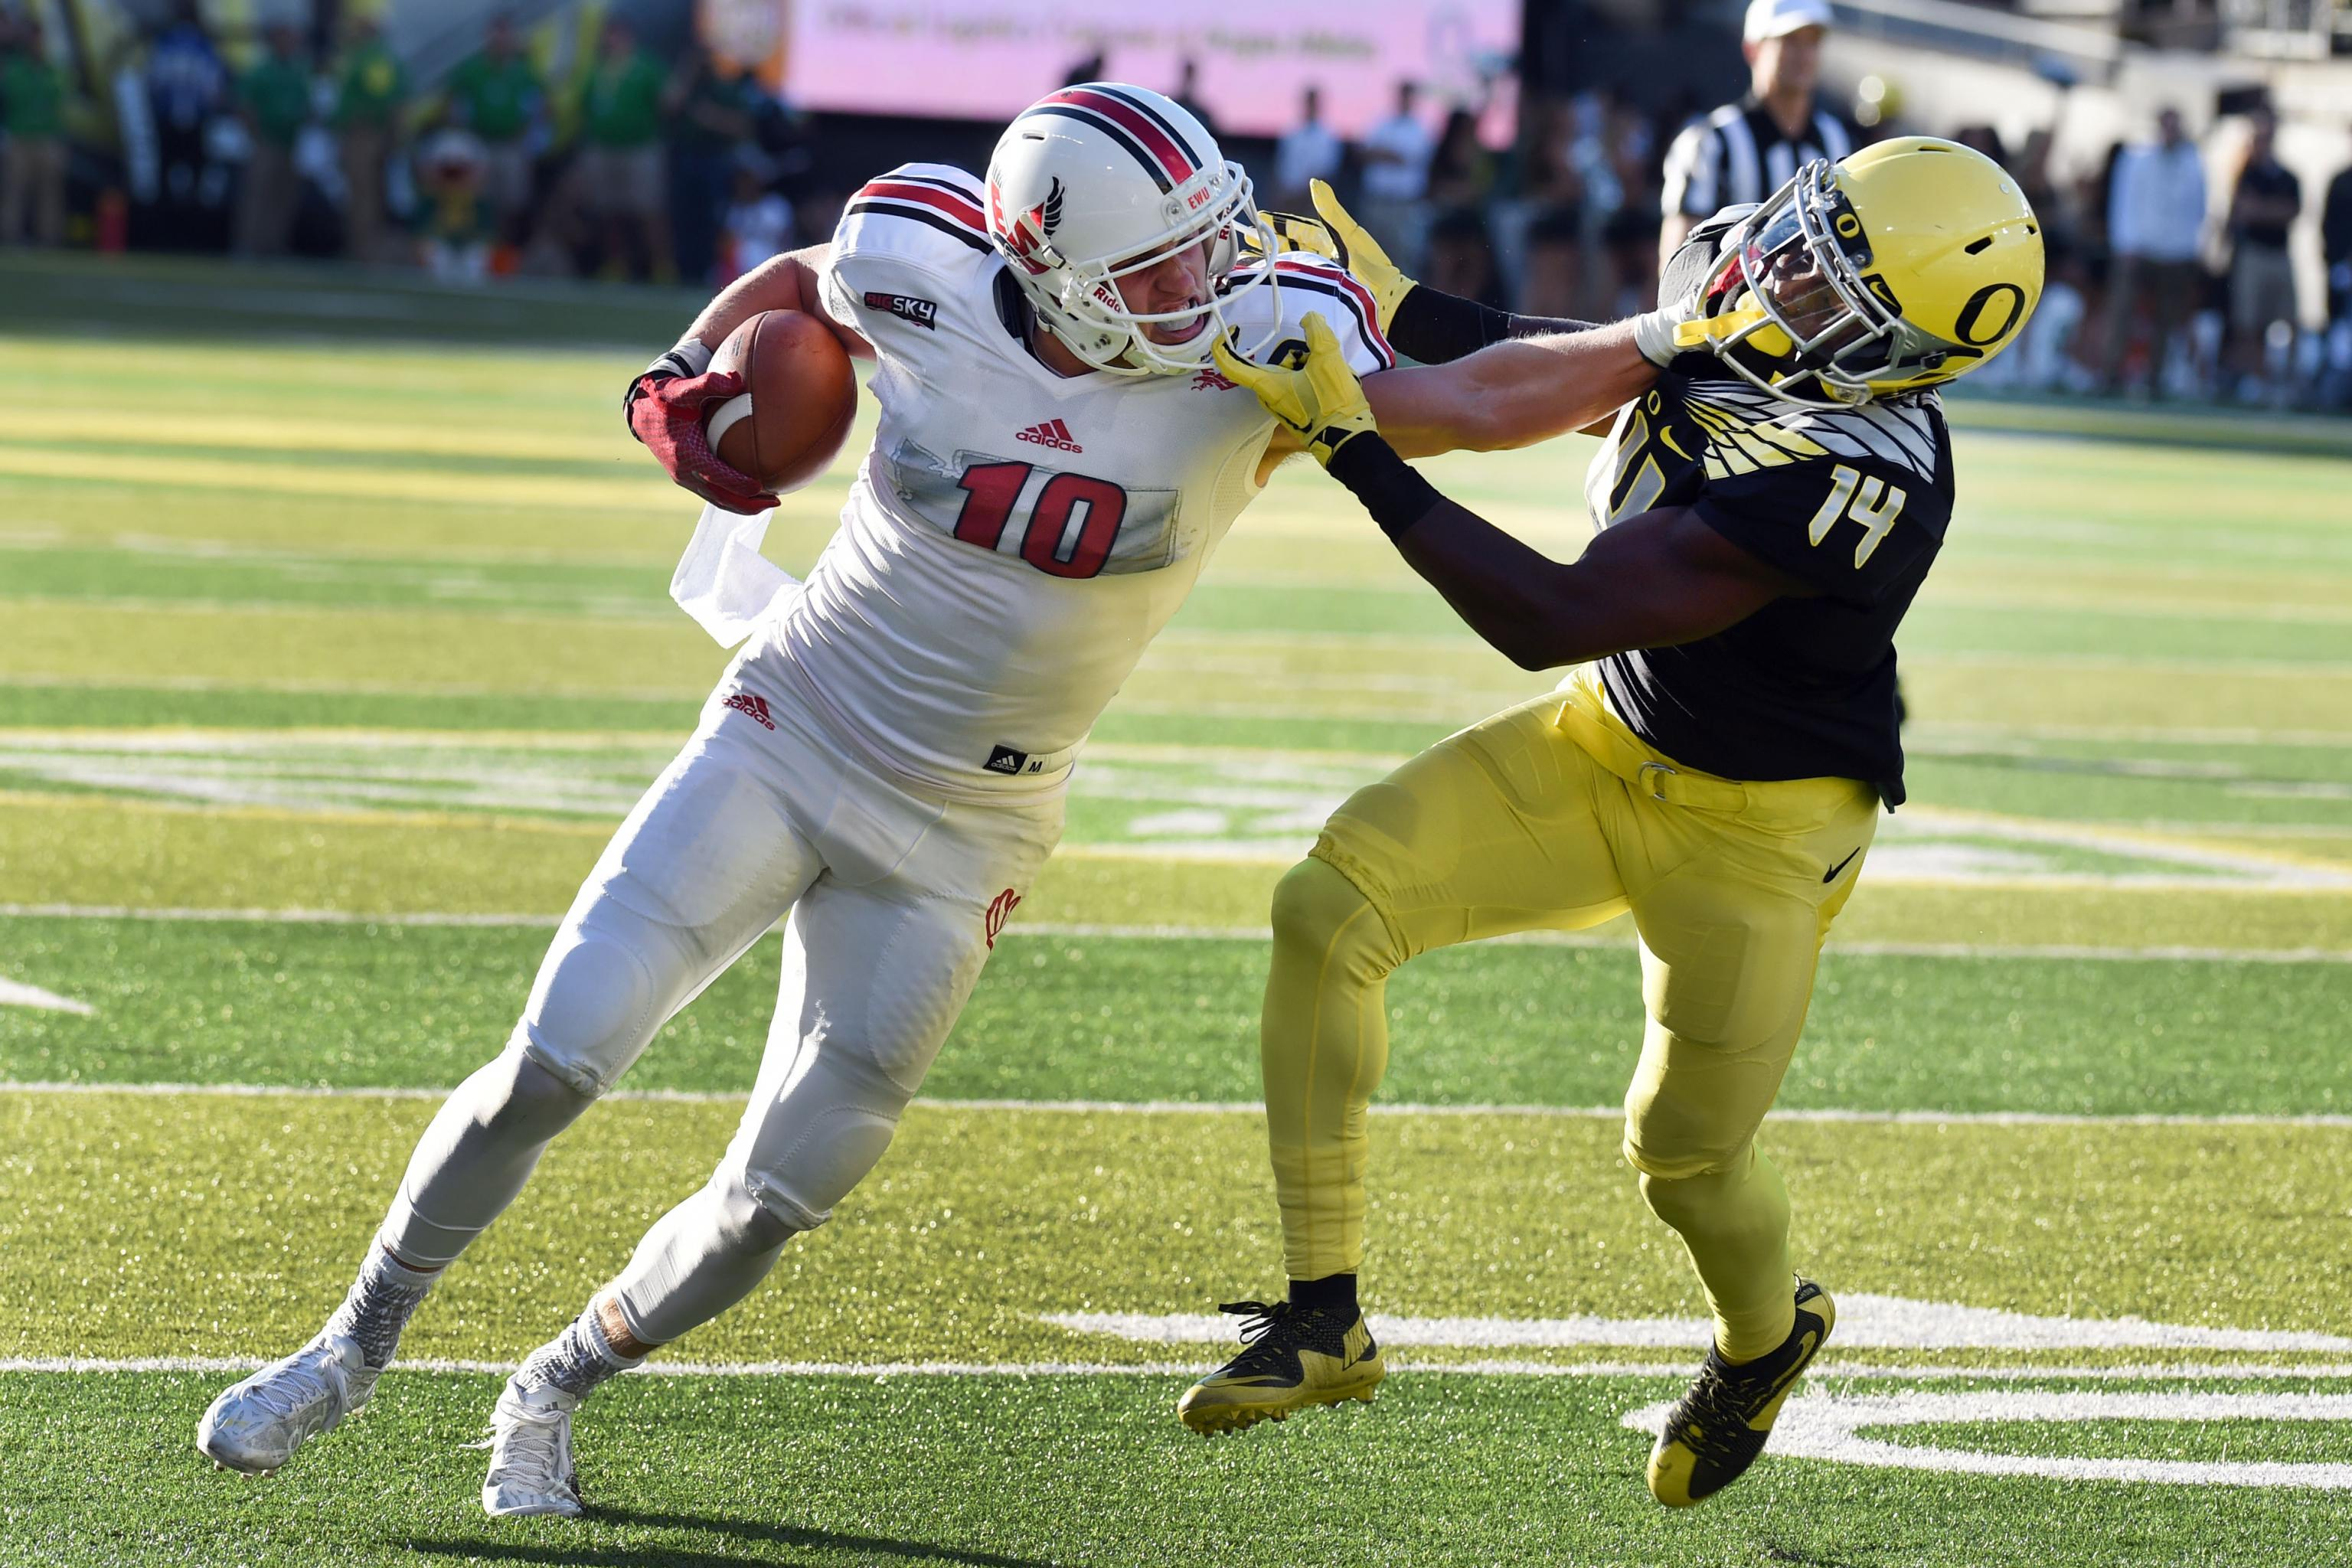 Fcs Star Cooper Kupp Poised To Shoot Up 2017 Nfl Draft Boards Bleacher Report Latest News Videos And Highlights